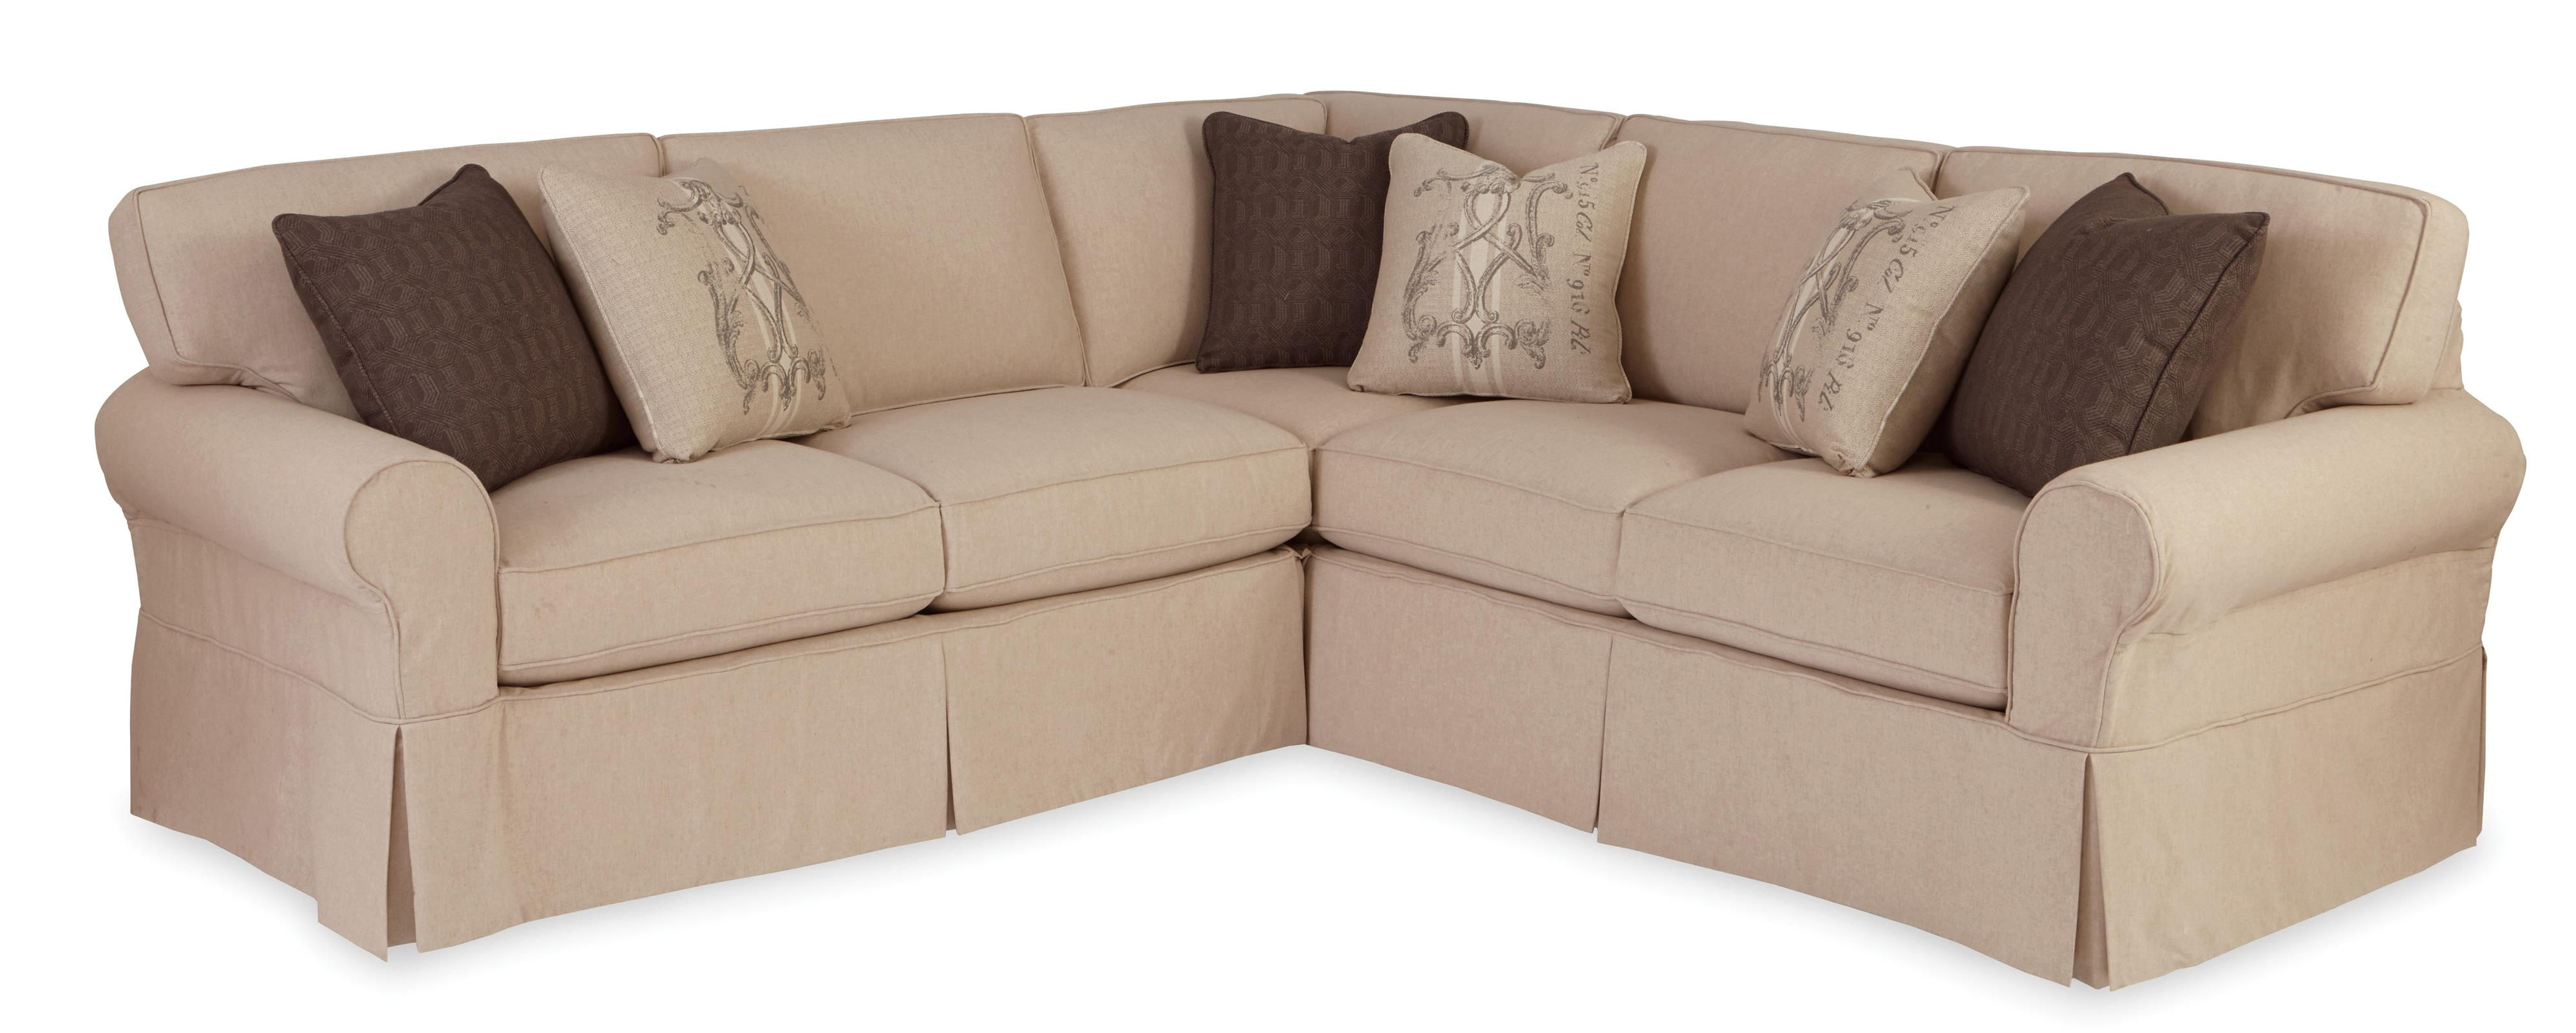 12 Photo Of Craftmaster Sectional Sofa